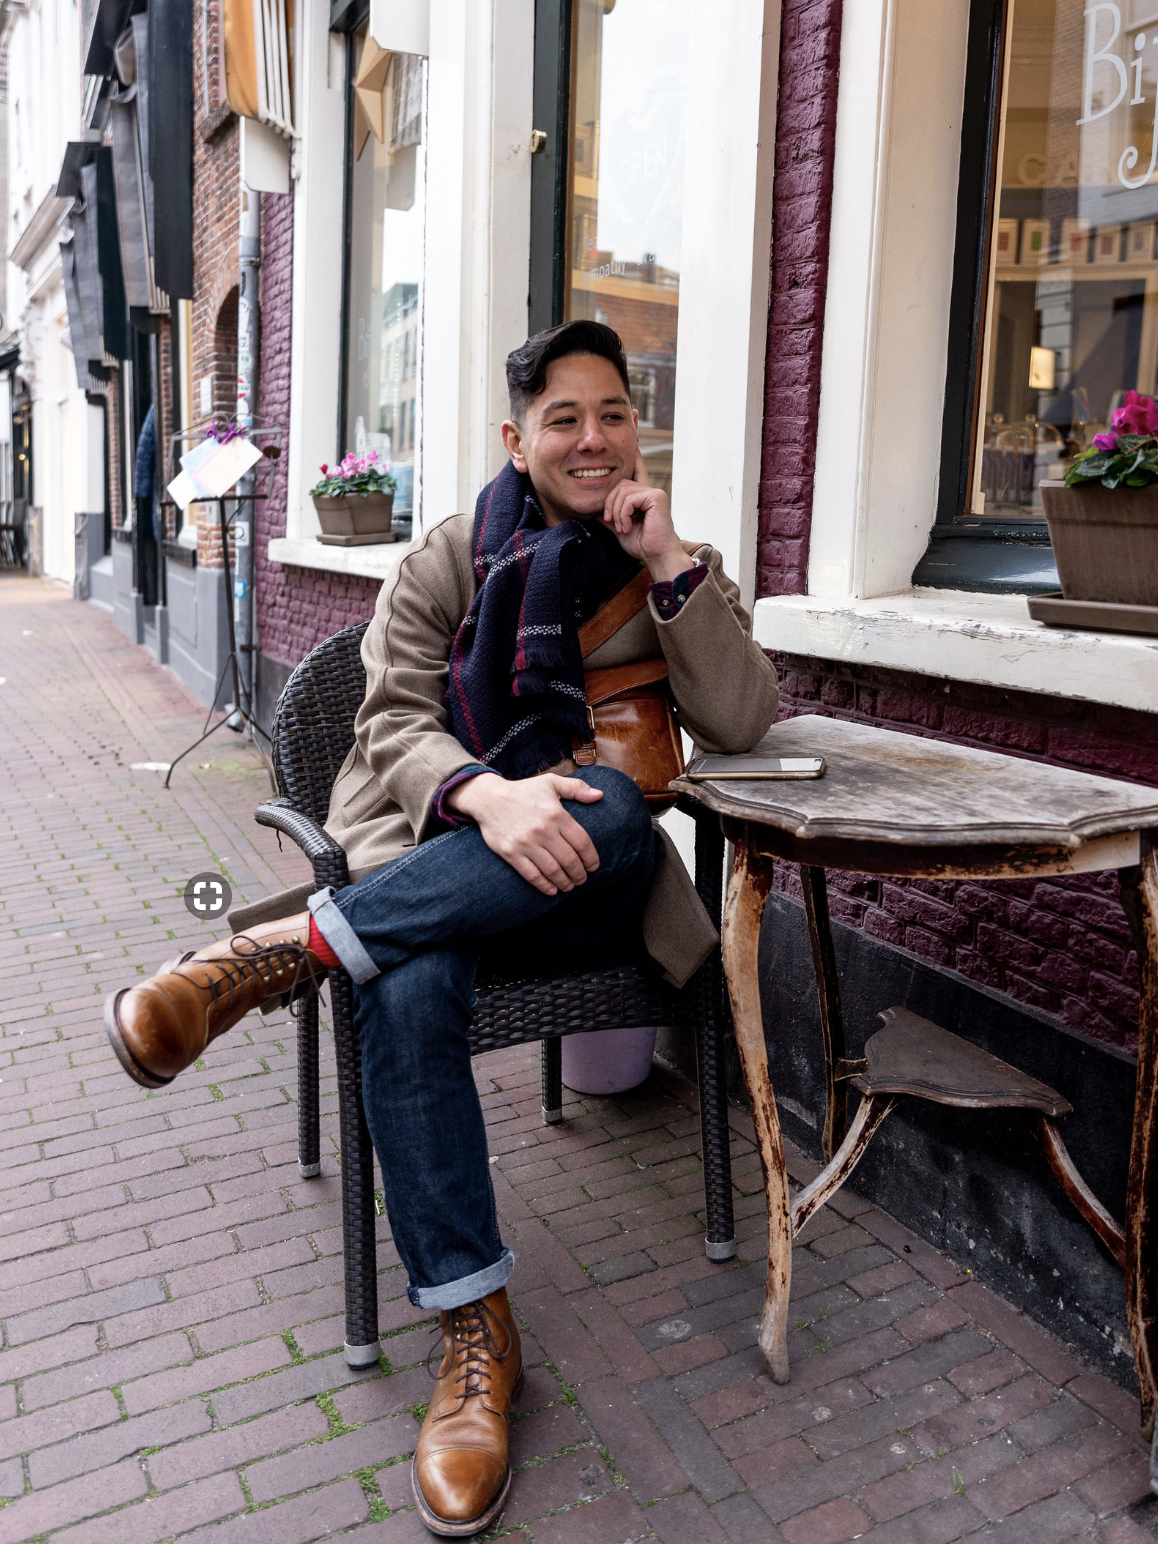 haarlem-portrait-photography-3.png